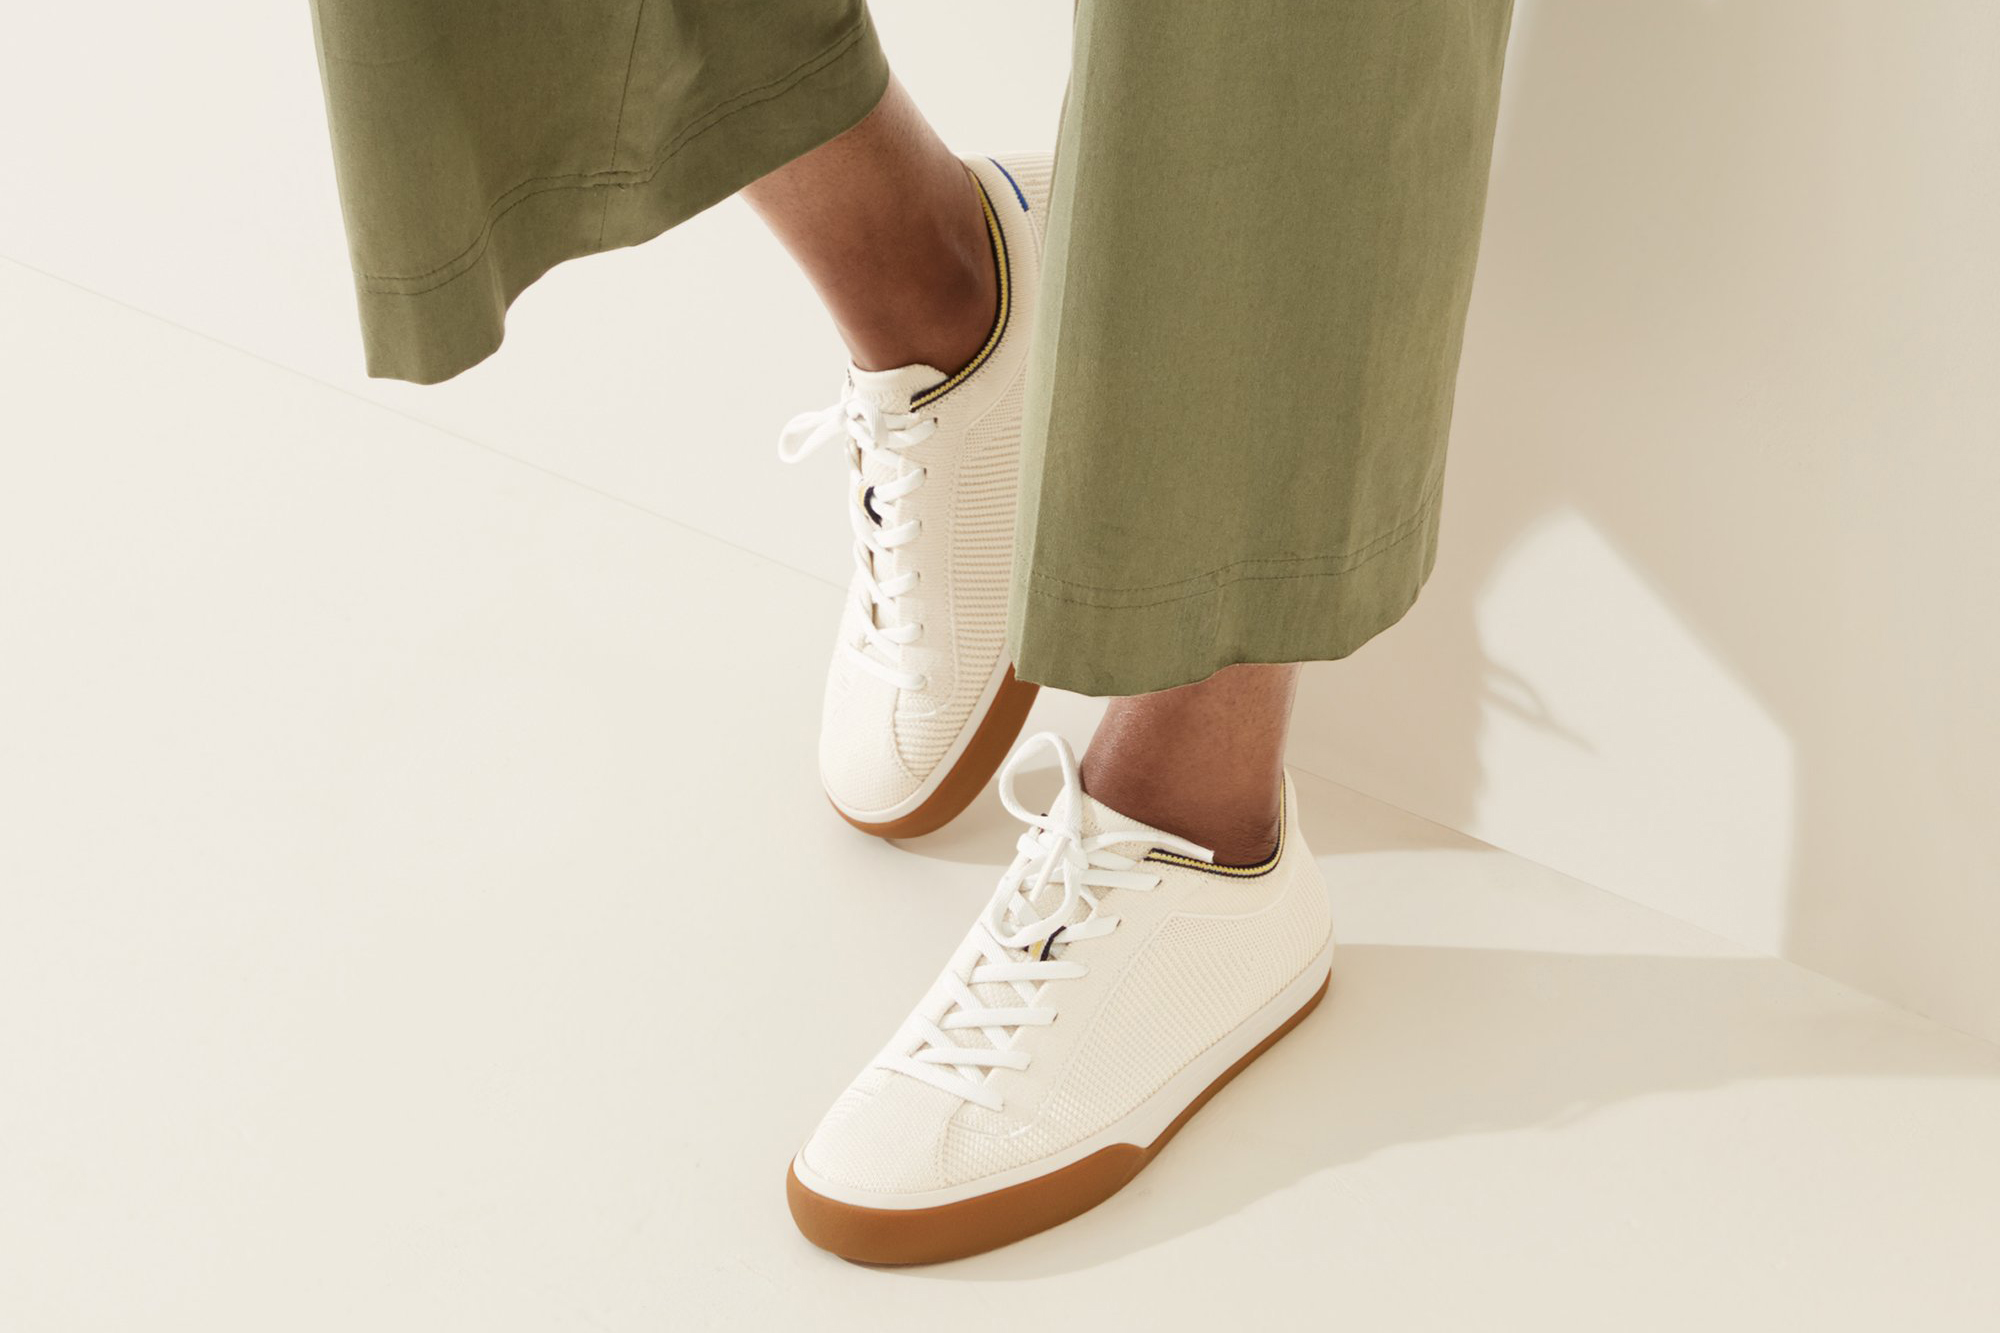 rothy's lace up sustainable sneaker